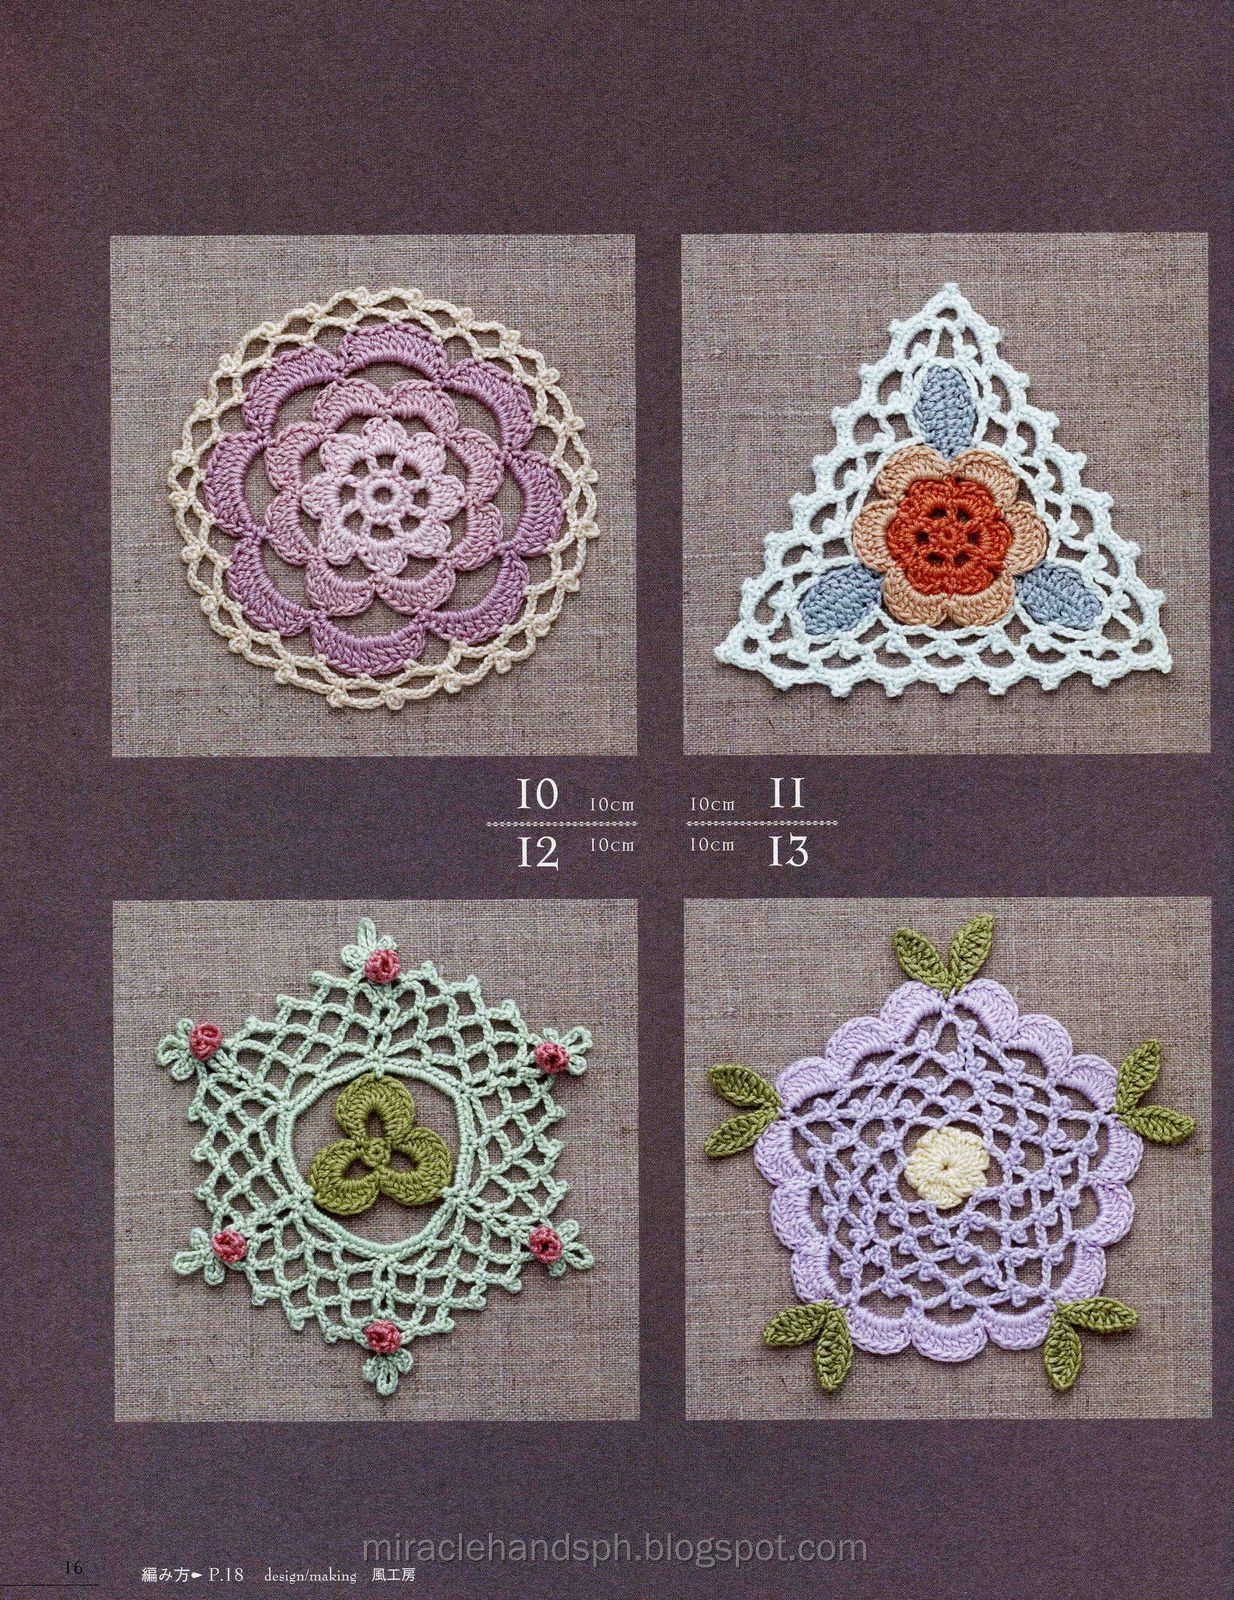 Crochet Patterns Download : Free japanese craft book: Crochet Rose Pattern 100 ~ Miracle hands